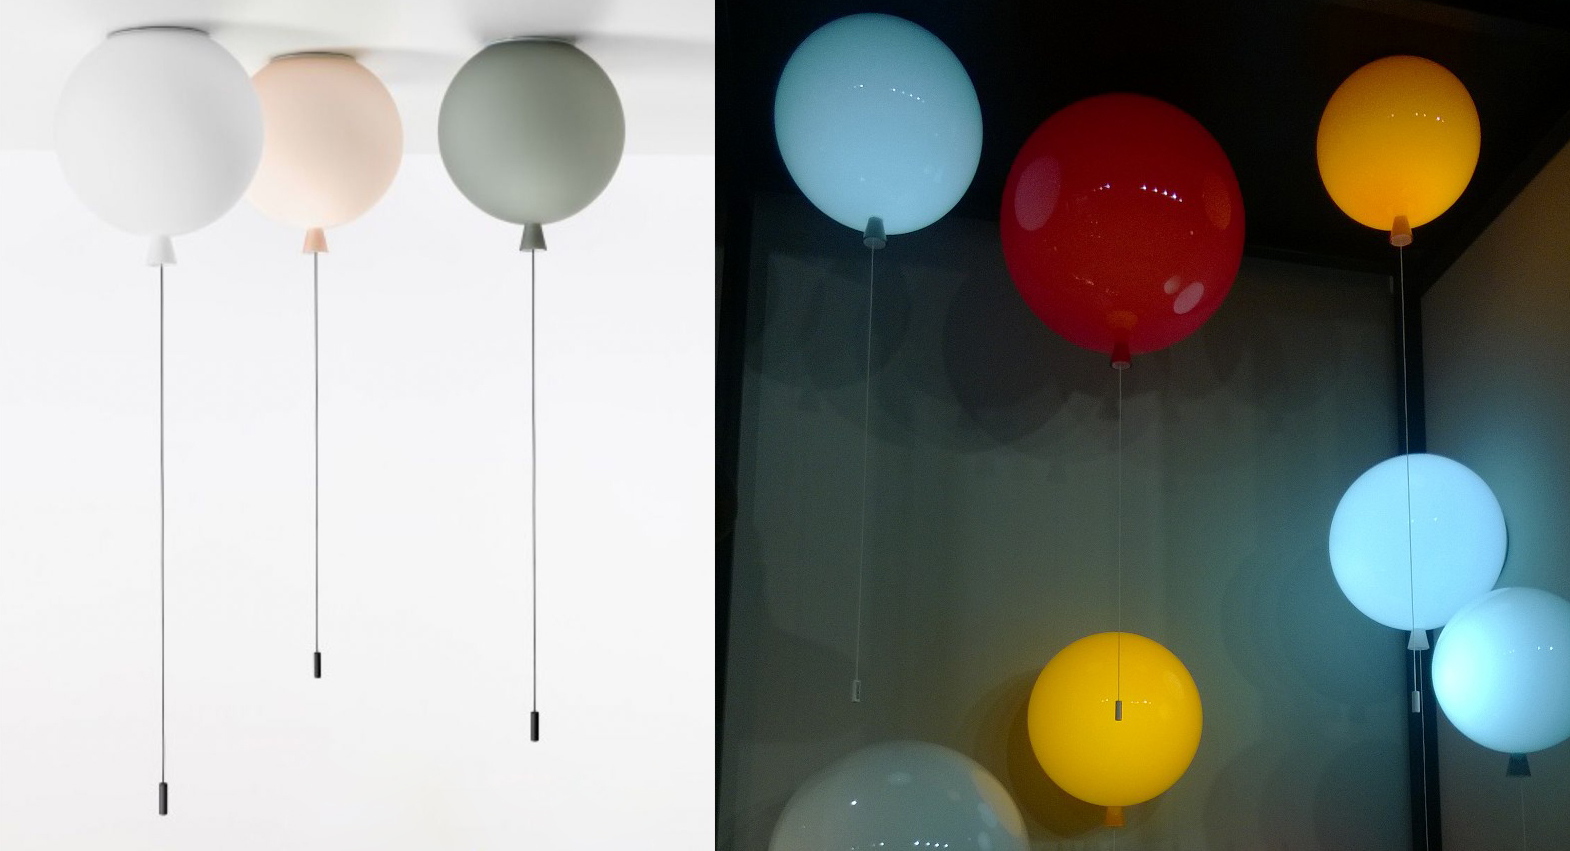 Ballon Memory lamp for nursery or kids room by Boris Klimek